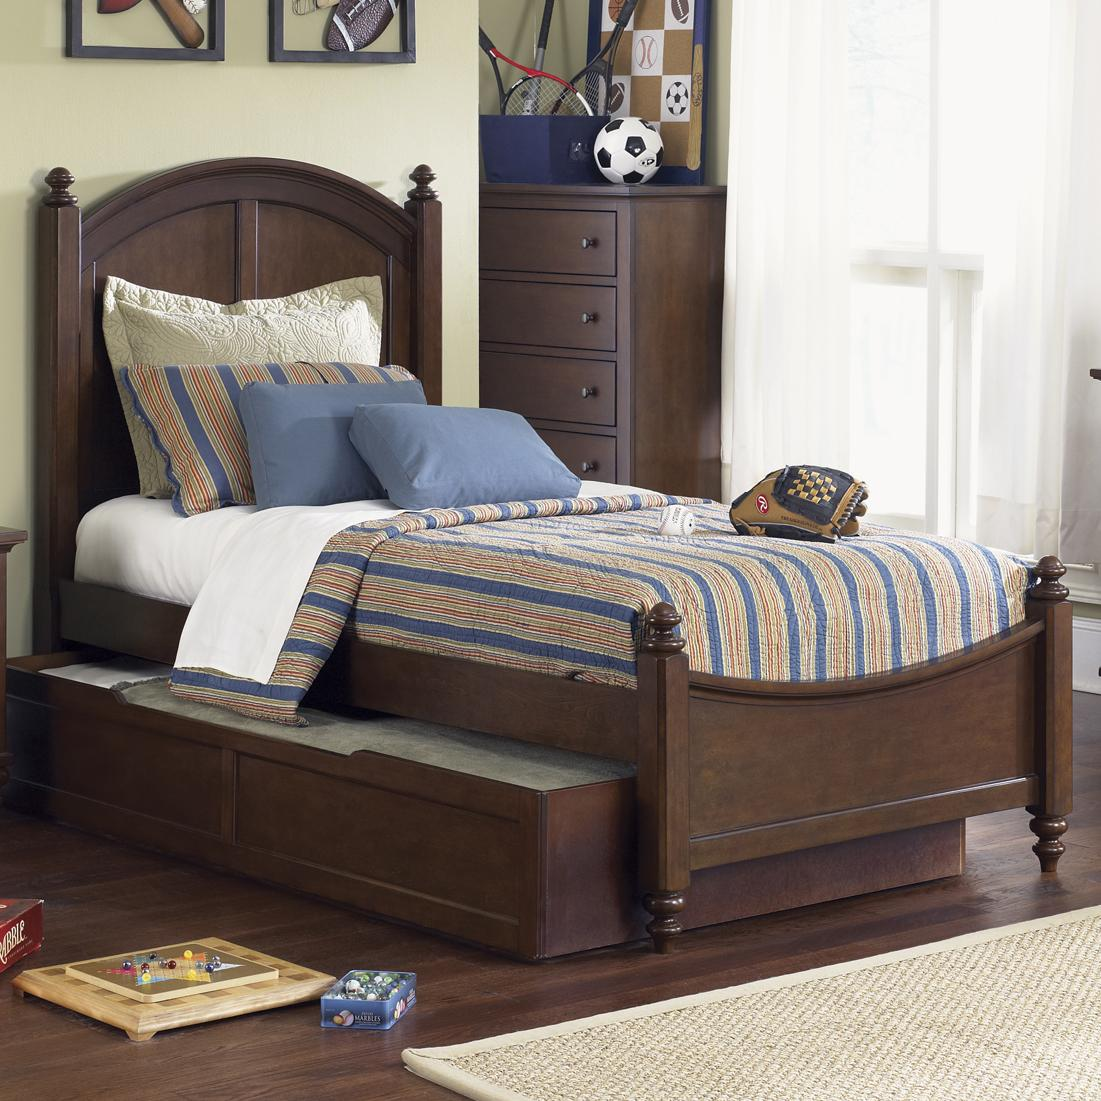 Abbott ridge youth bedroom twin panel bed rotmans for Youth furniture